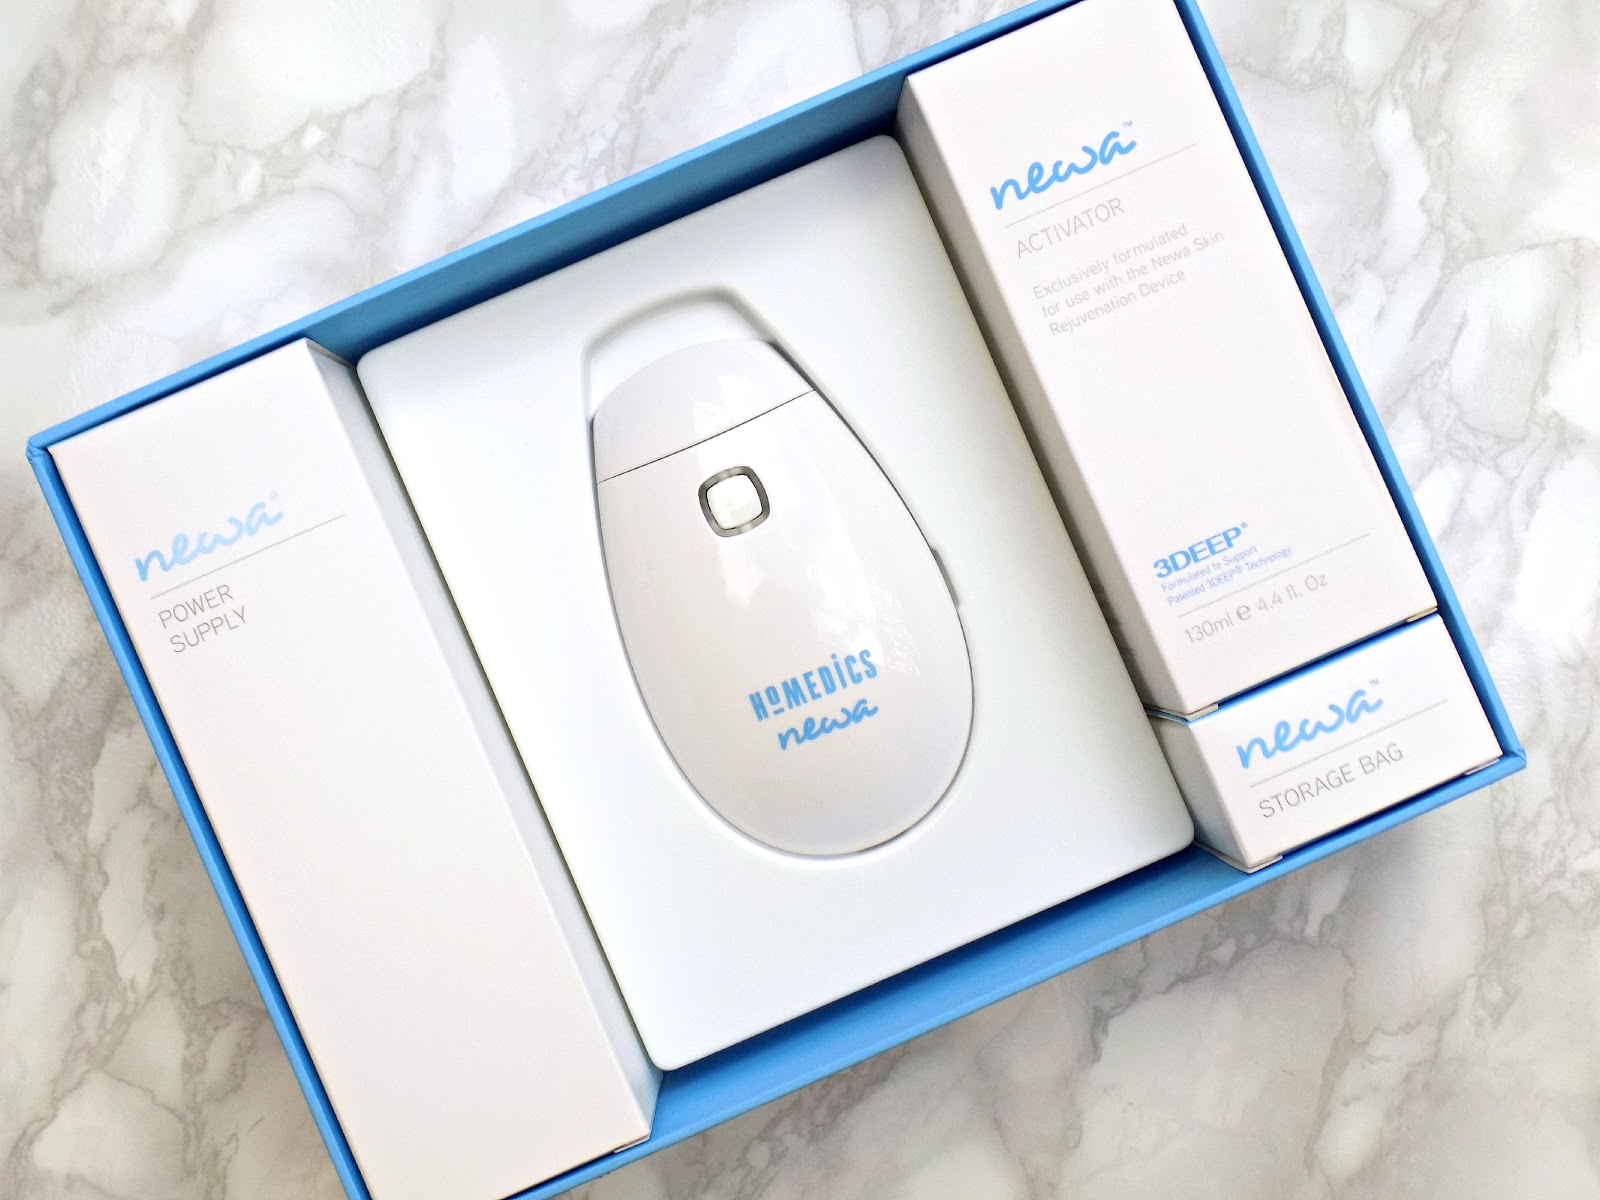 HoMedics NEWA - Skin Rejuvenation Treatment